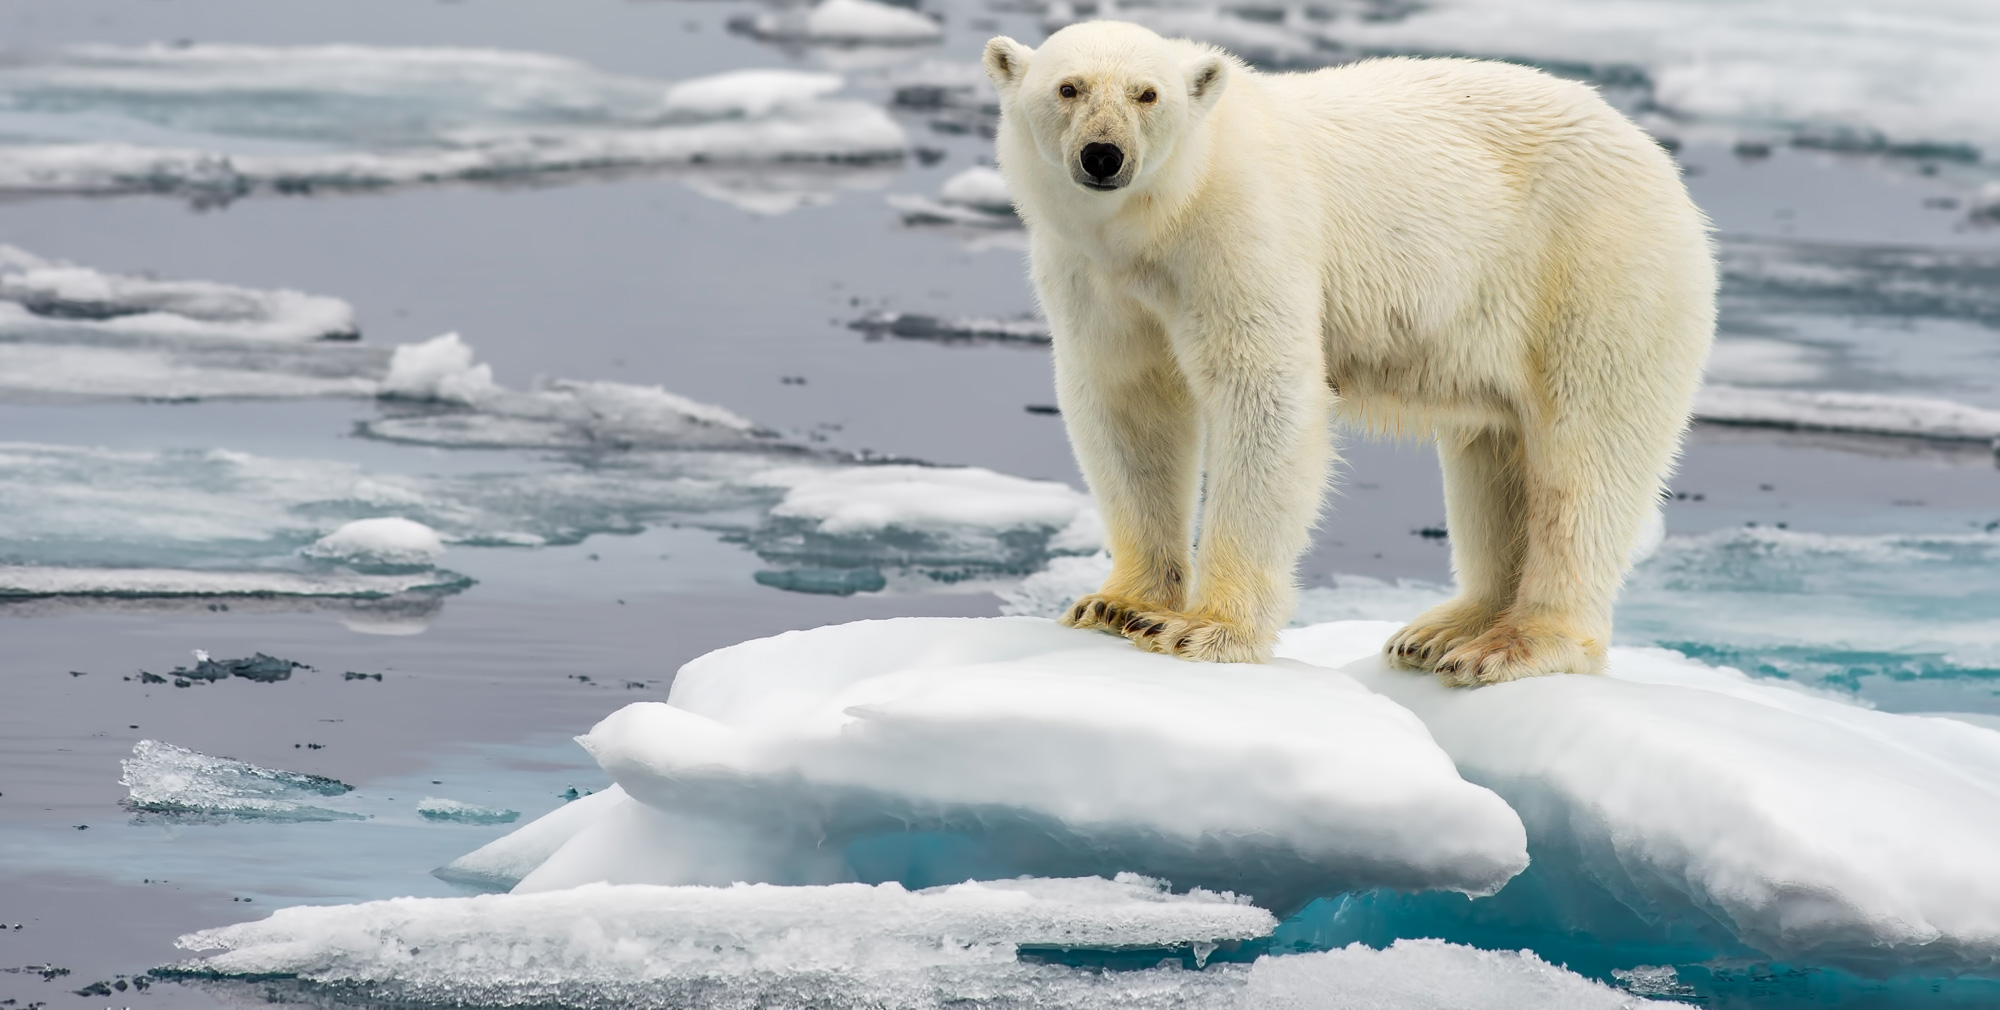 With the melting of Artic ice, polar bears have been forced to migrate in search of food